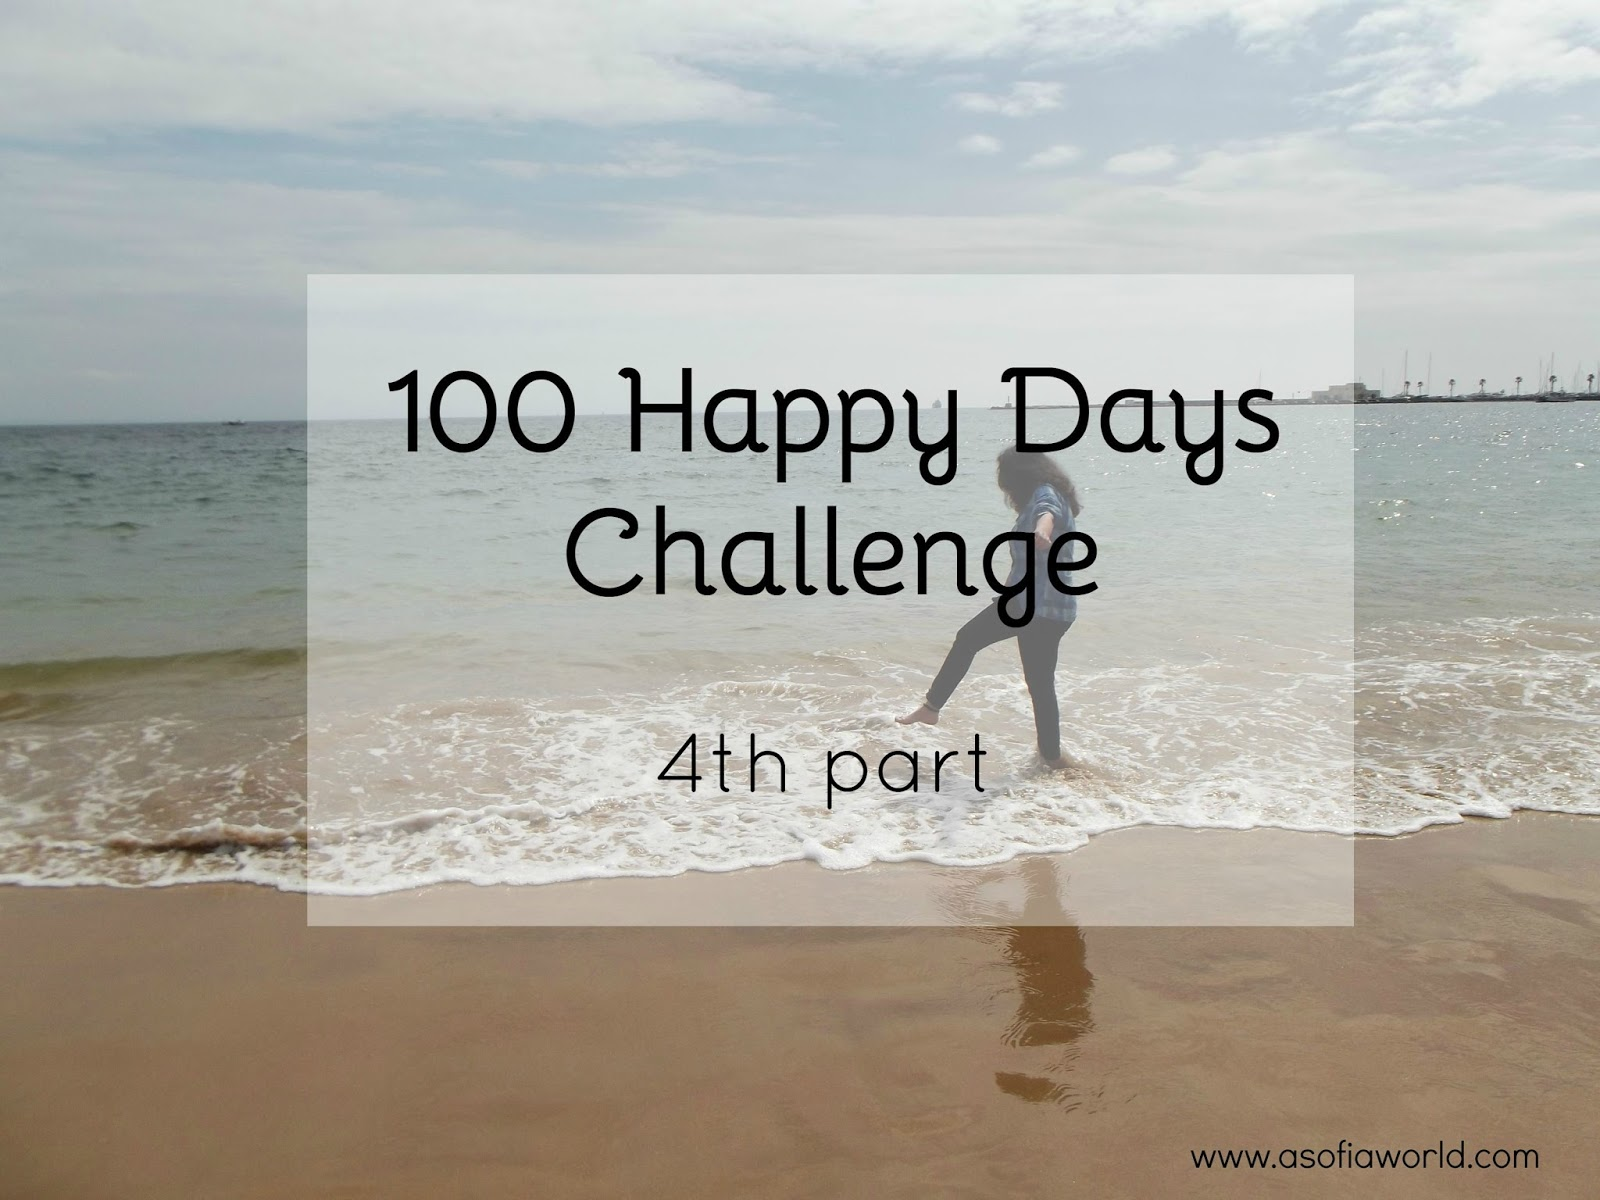 100 Happy Days 4th part